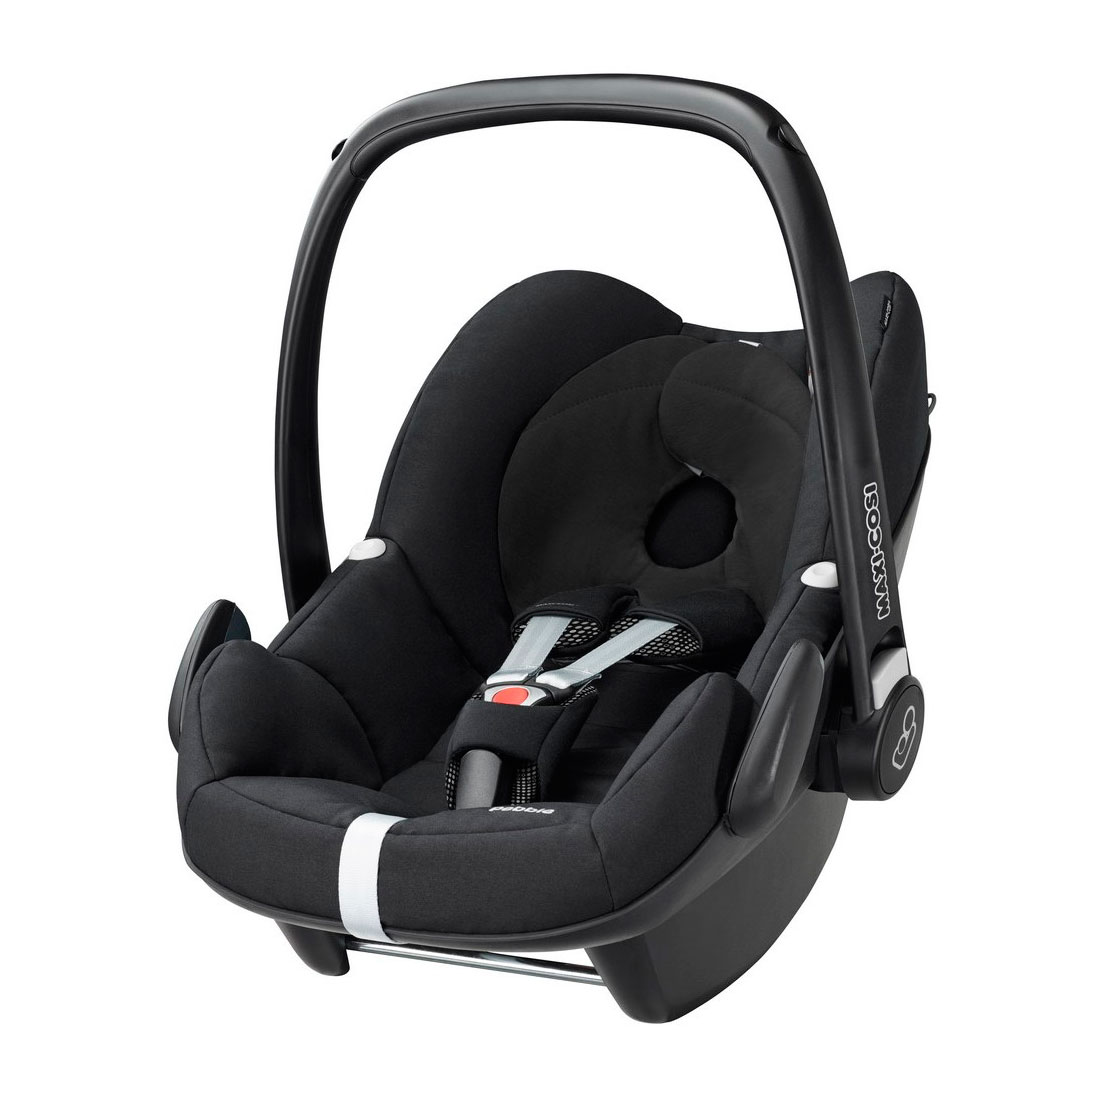 ���������� Maxi-Cosi Pebble Digital Black